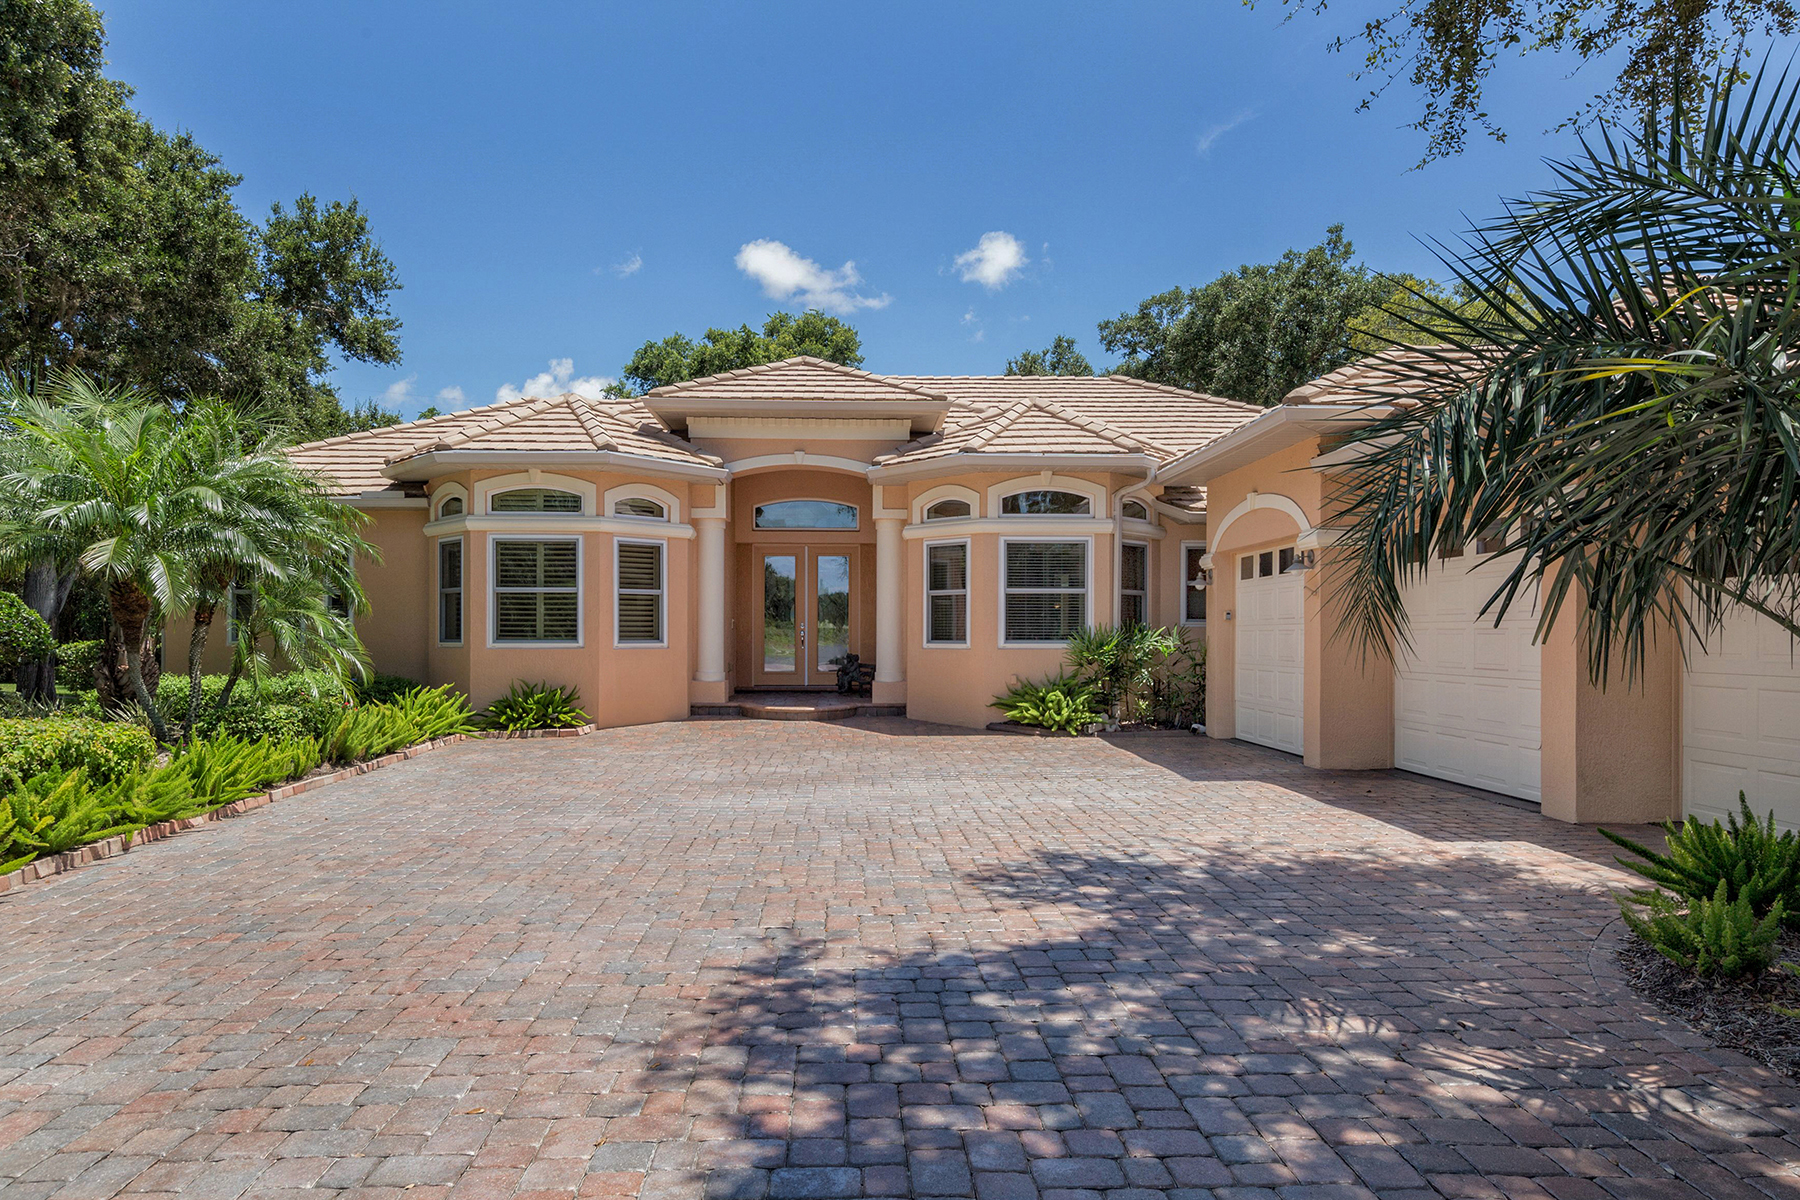 Single Family Home for Sale at NOKOMIS 2415 Uppakrik Ln, Nokomis, Florida, 34275 United States